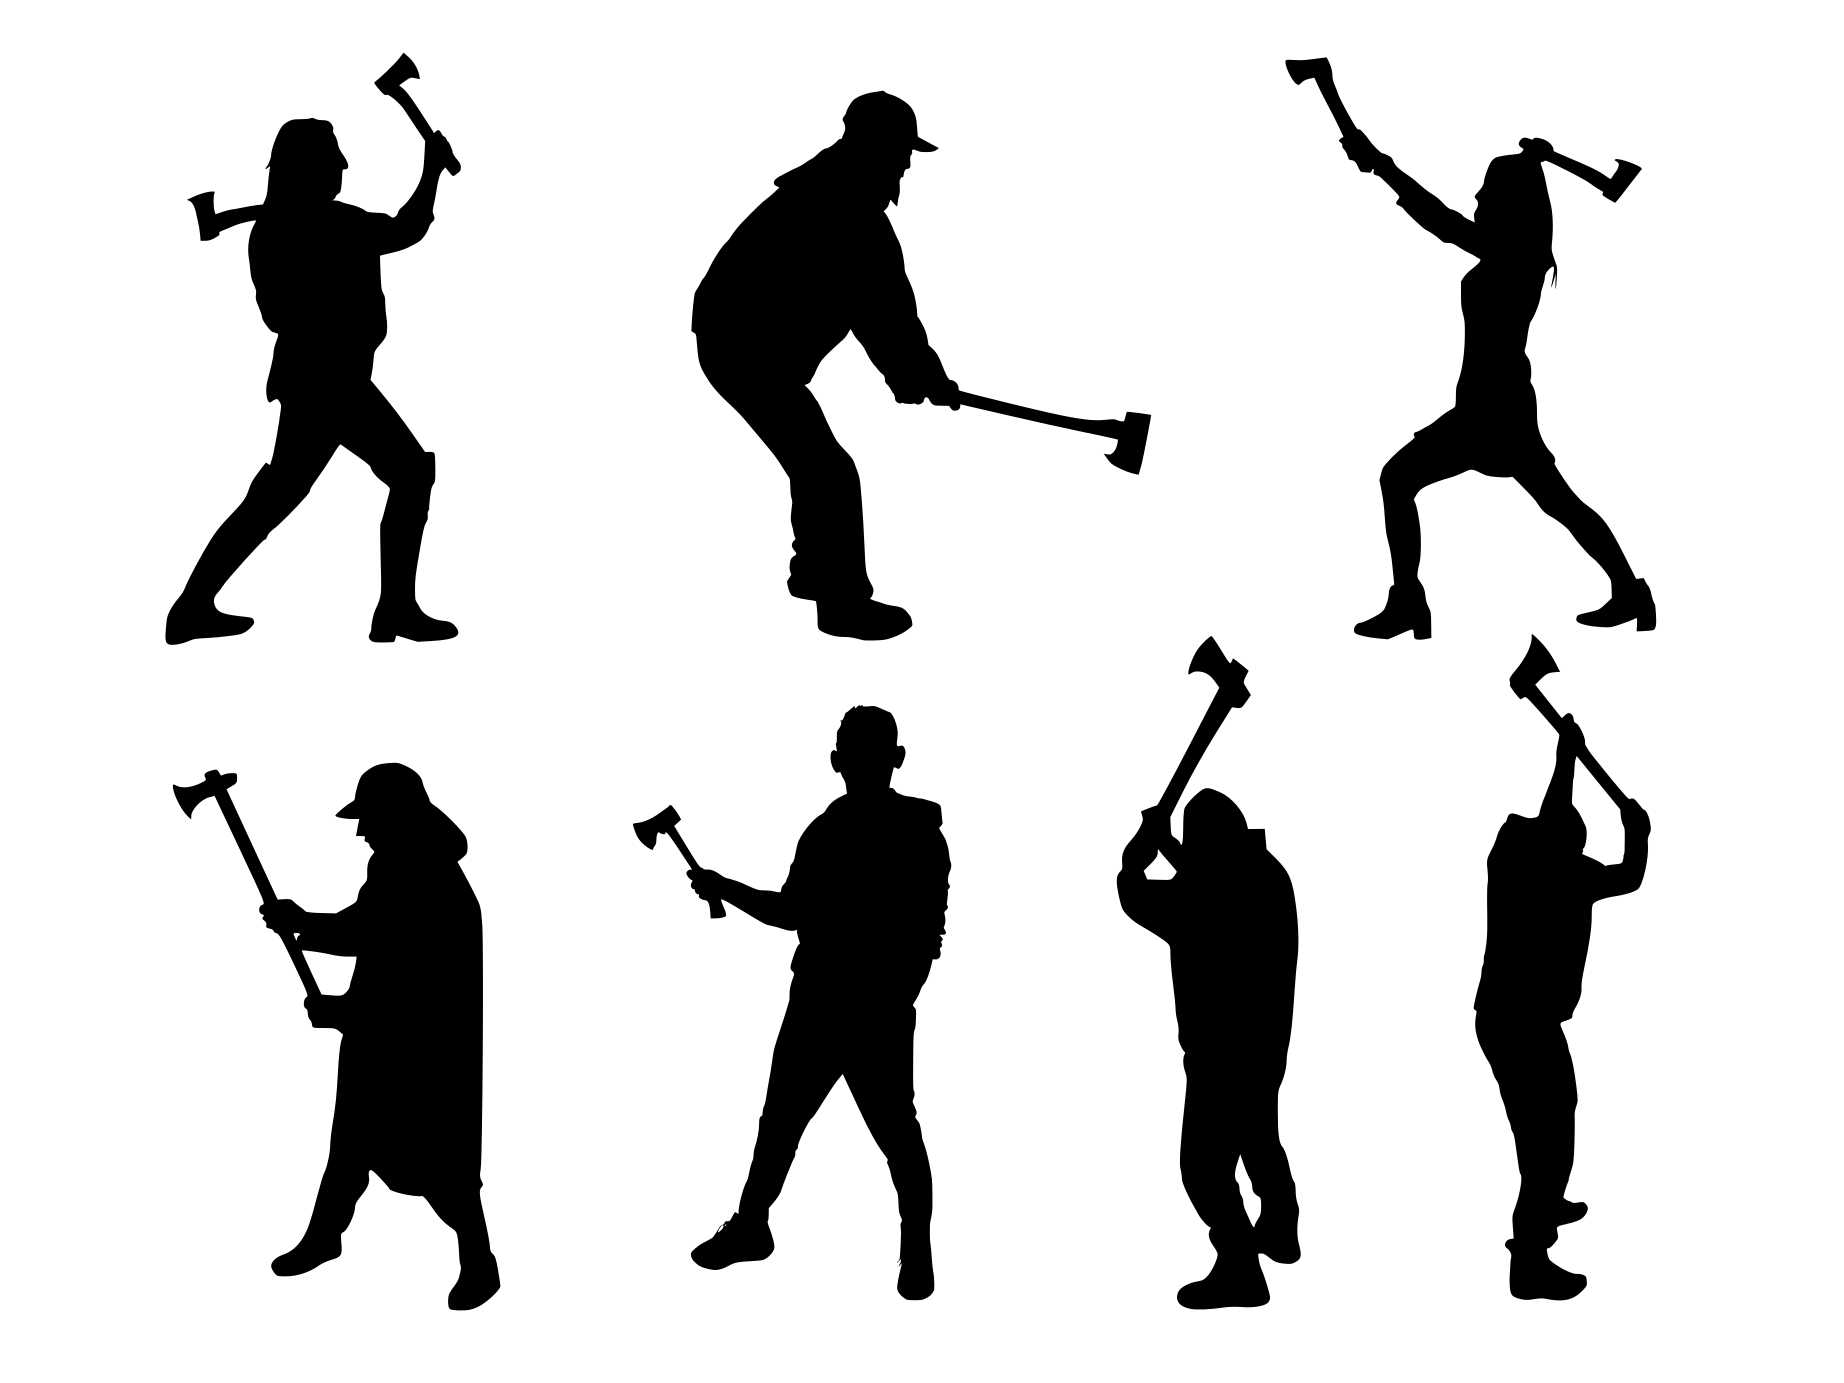 man-with-axe-silhouette-cover.jpg